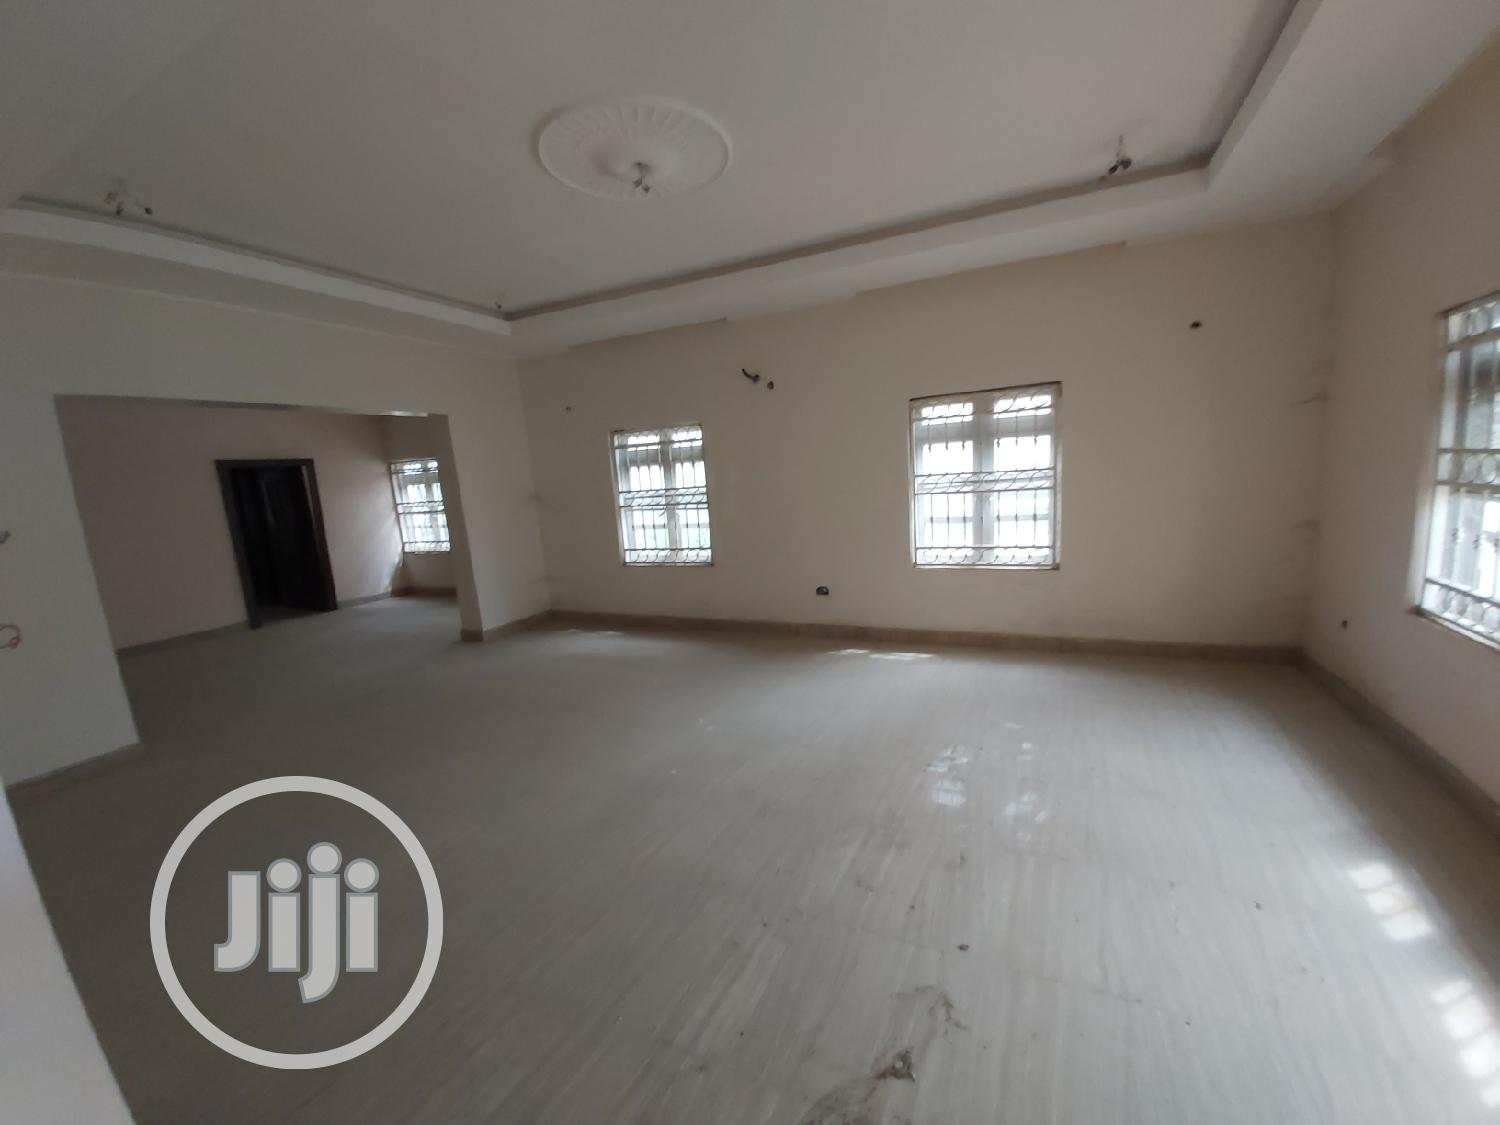 5 Bedroom Fully Detached Duplex For Sale | Houses & Apartments For Sale for sale in Wuse 2, Abuja (FCT) State, Nigeria